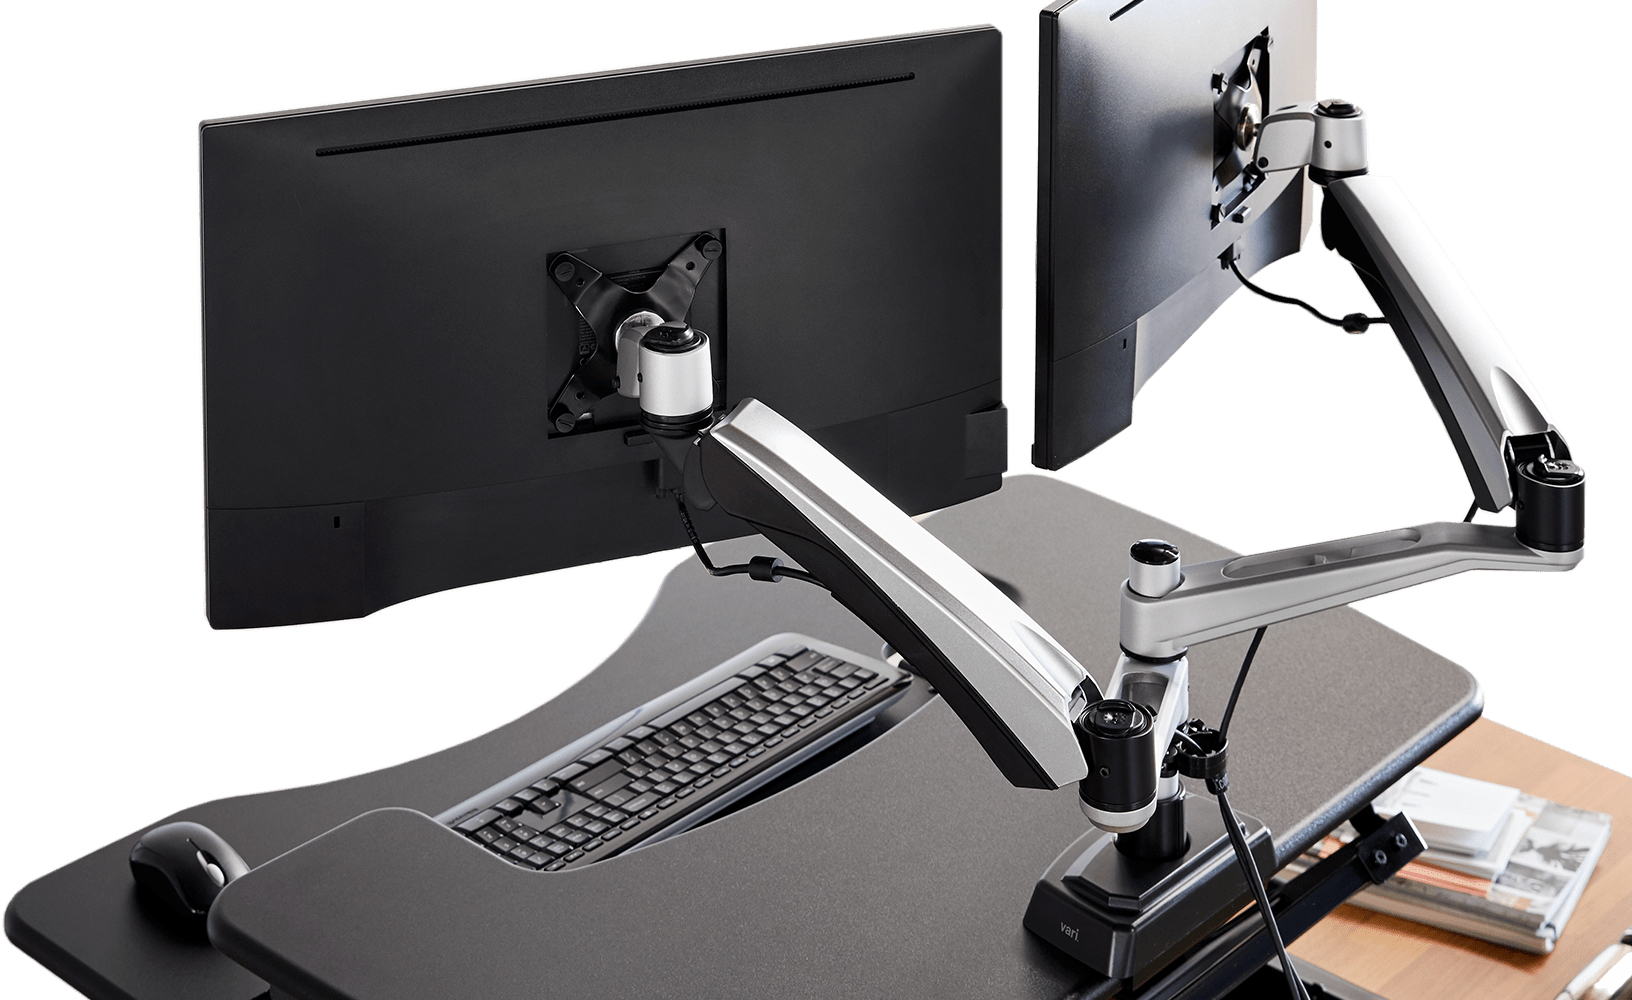 monitor arms with monitor attached